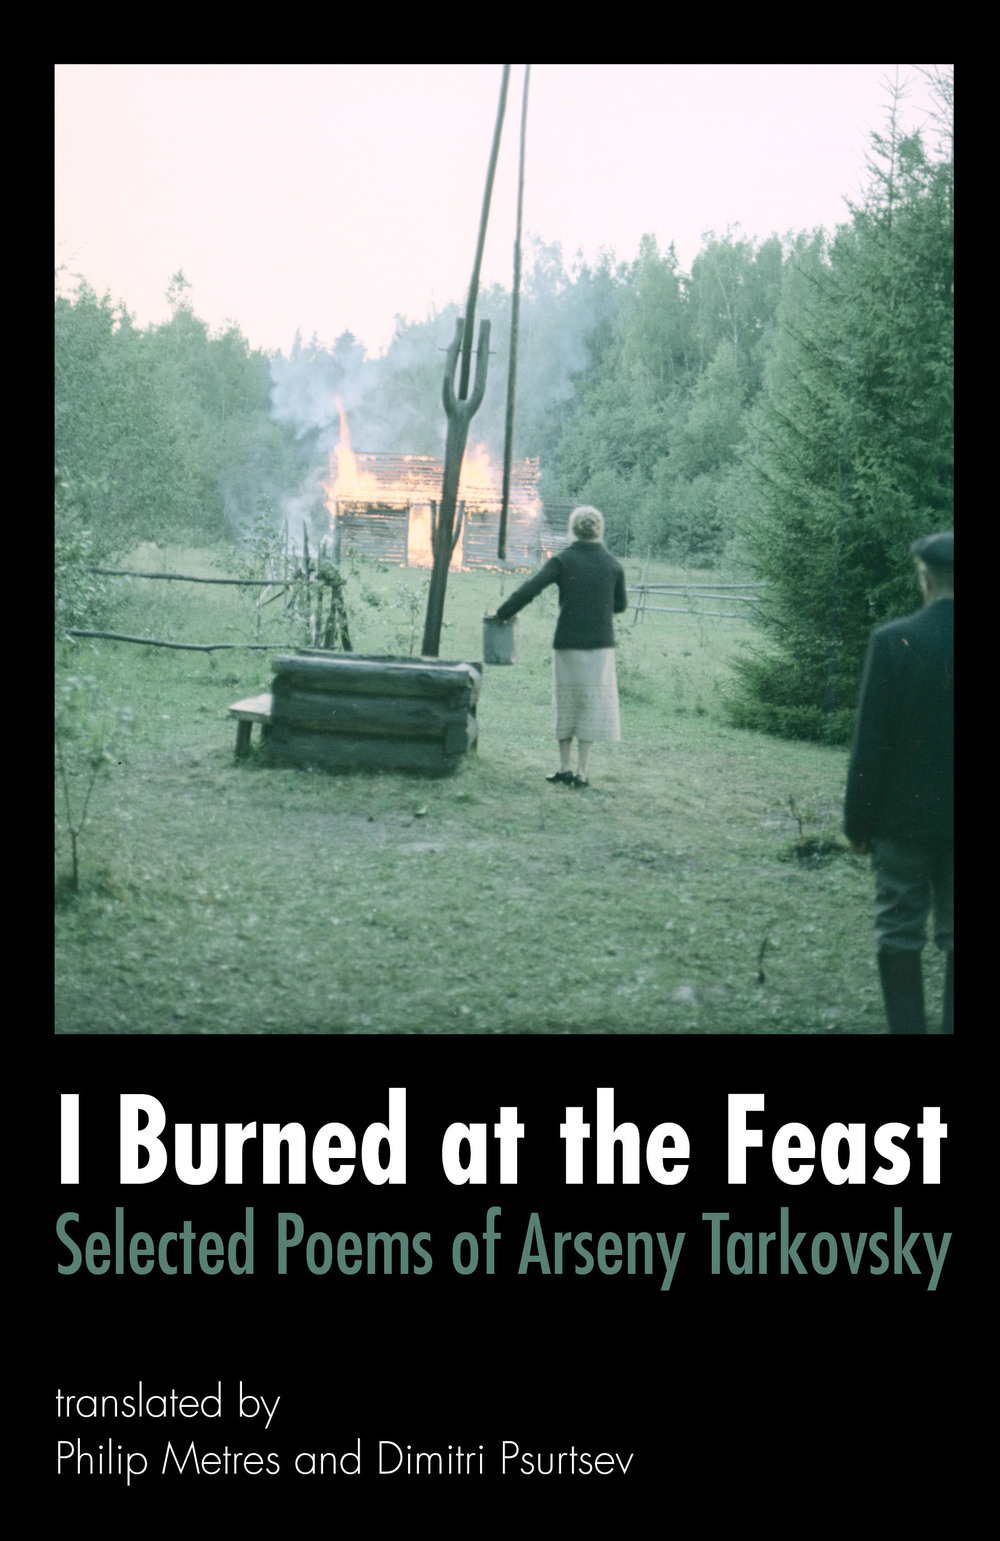 I Burned at the Feast: Selected Poems of Arseny Tarkovsky Translated by Philip Metres & Dimitri Psurtsev